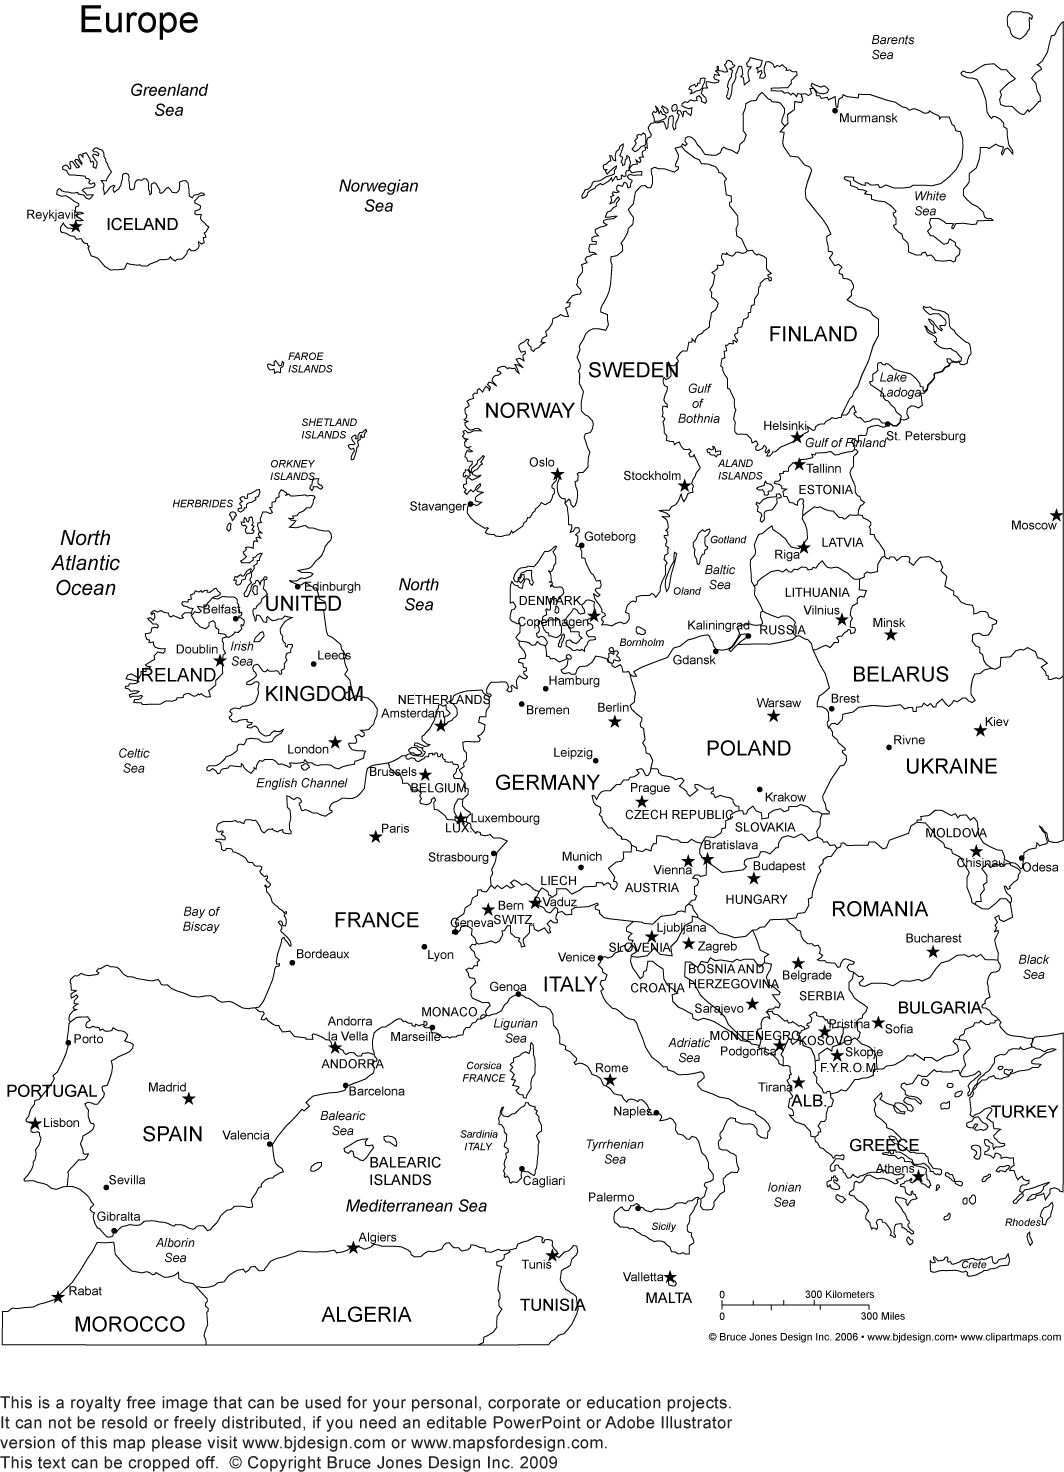 colouring map of europe europe map coloring page a free travel coloring printable colouring europe of map